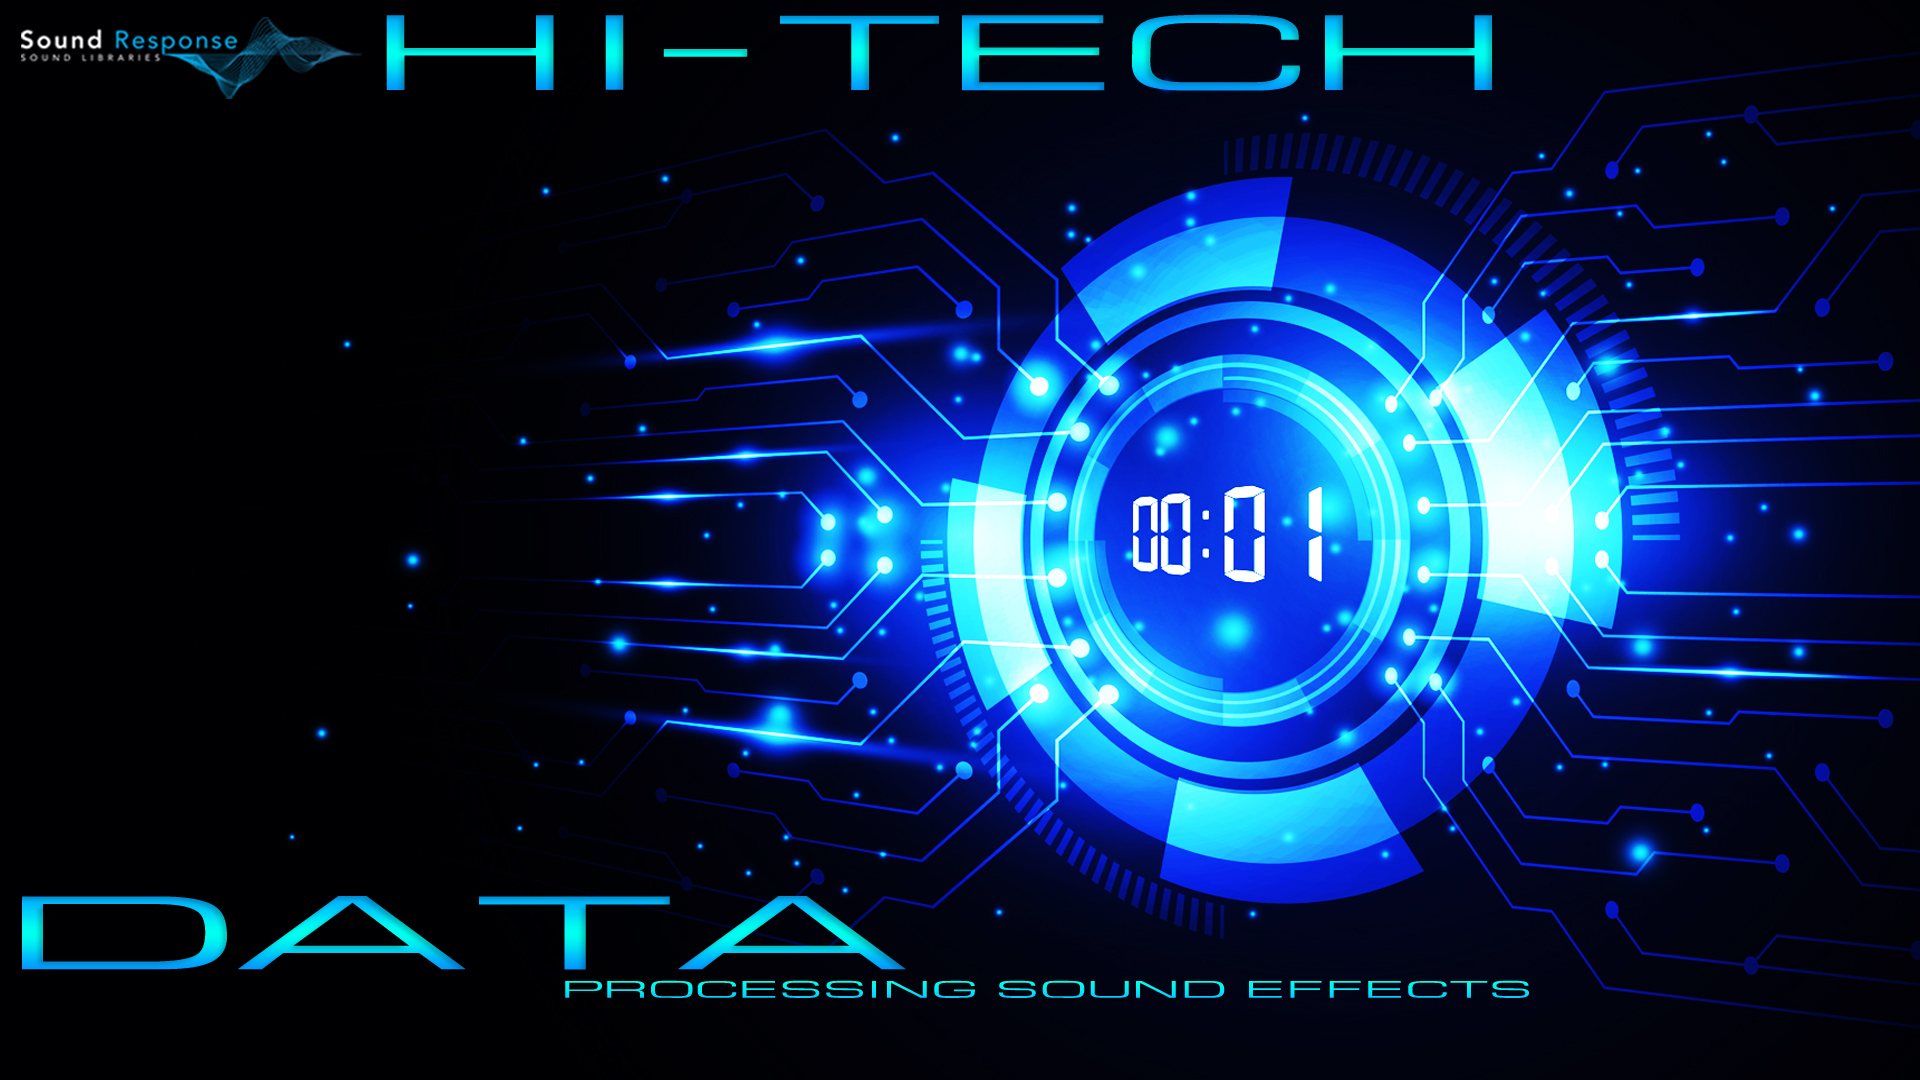 Hi-Tech Data Processing Sci-Fi Sound Effects by Sound